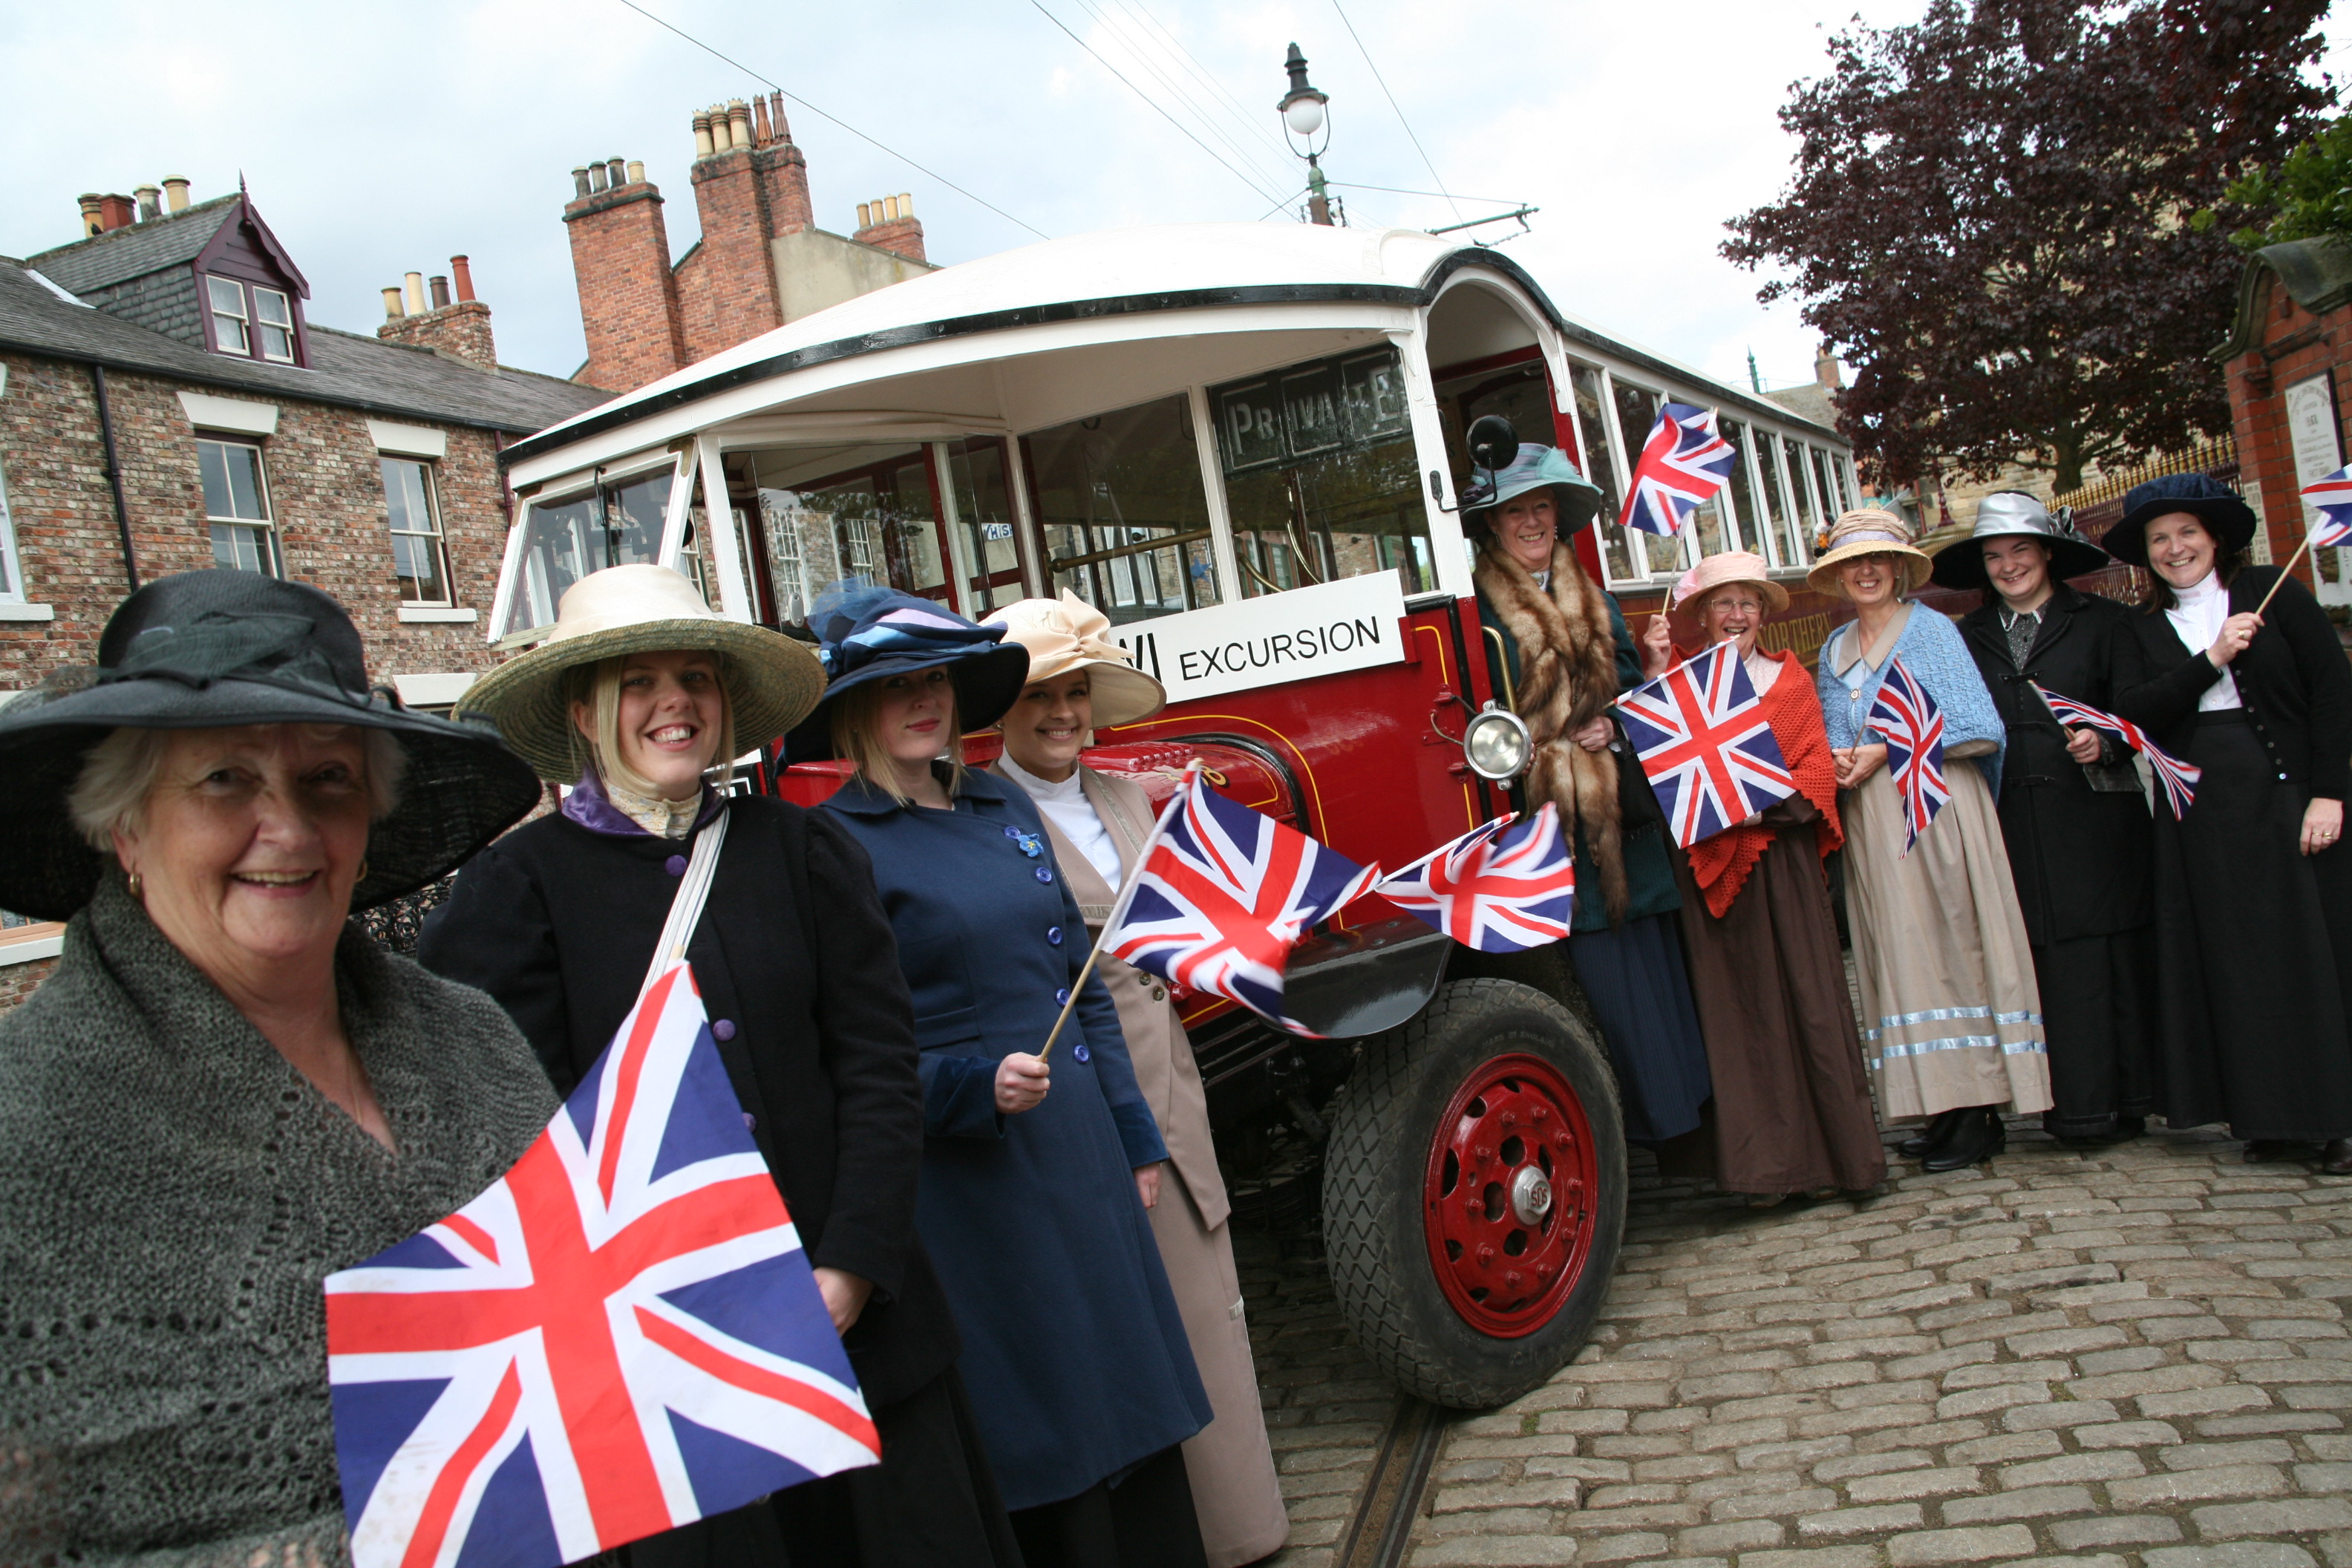 Beamish, Museum, Attraction, North East, Events, England, Great Day Out, Top Ten Places, Family Friendly, Dog Friendly, Victorian, 1940s, World War Two, 1950s, Festival, Transport, Costume, Learning, Award, group, travel.